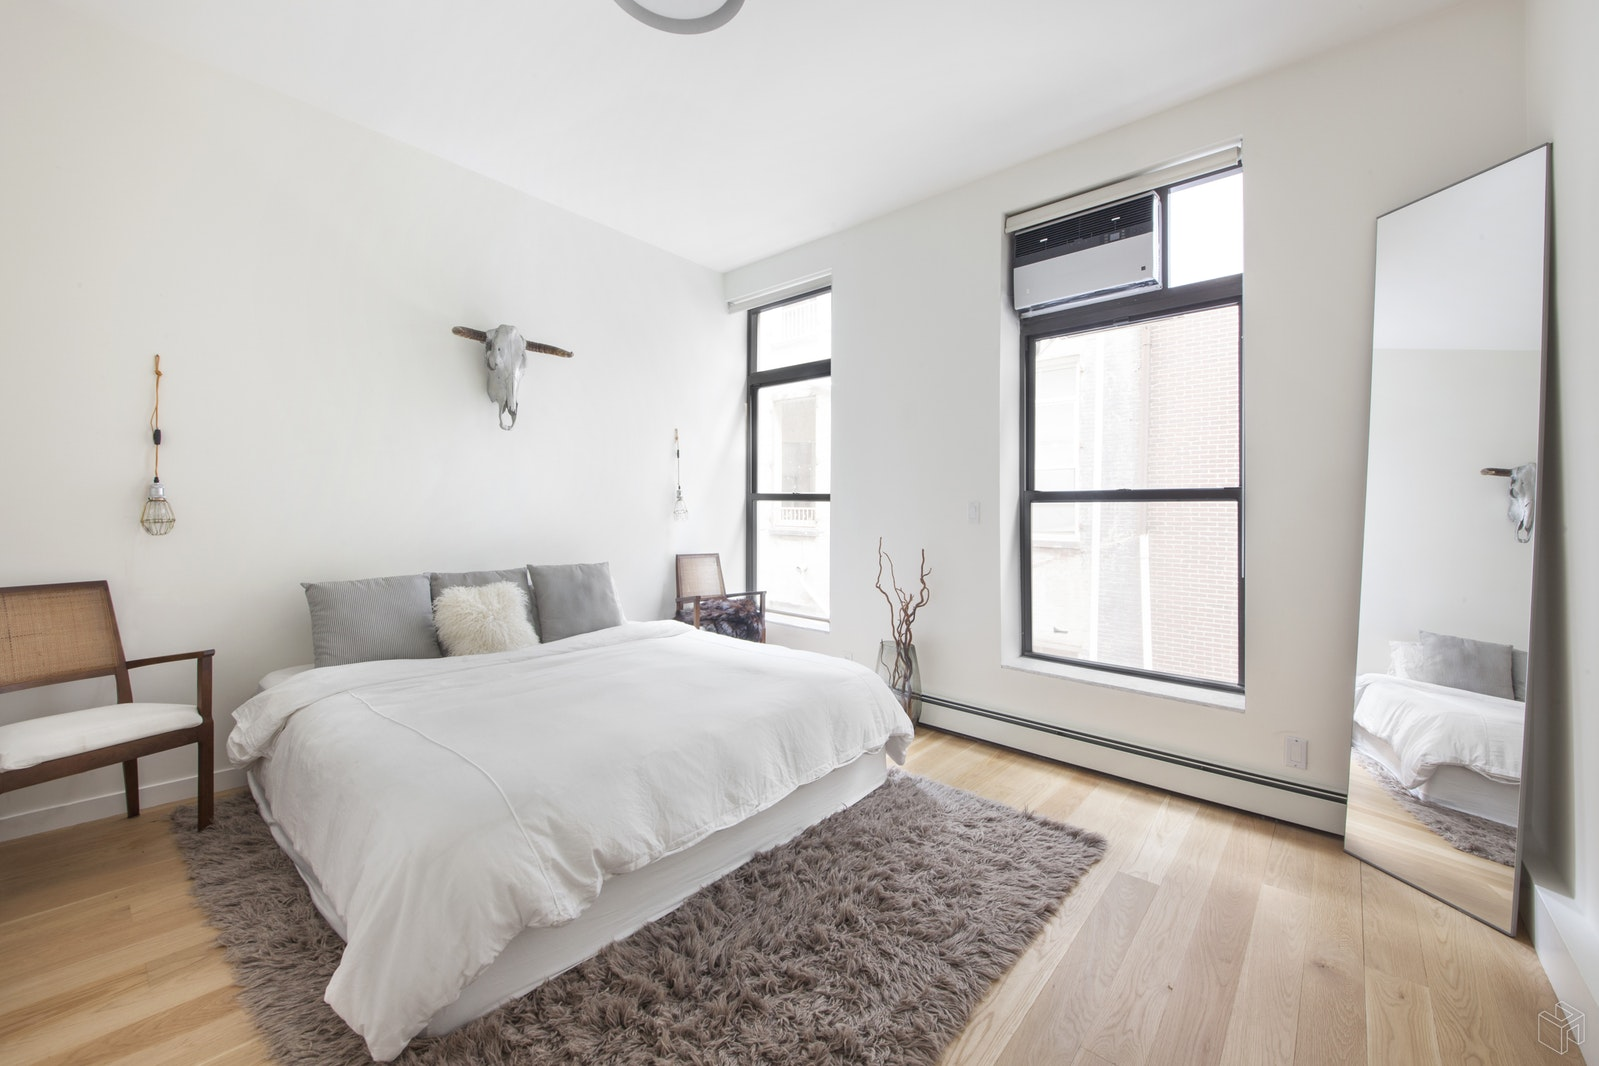 104 Reade Street, Tribeca, NYC, 10013, Price Not Disclosed, Rented Property, Halstead Real Estate, Photo 3